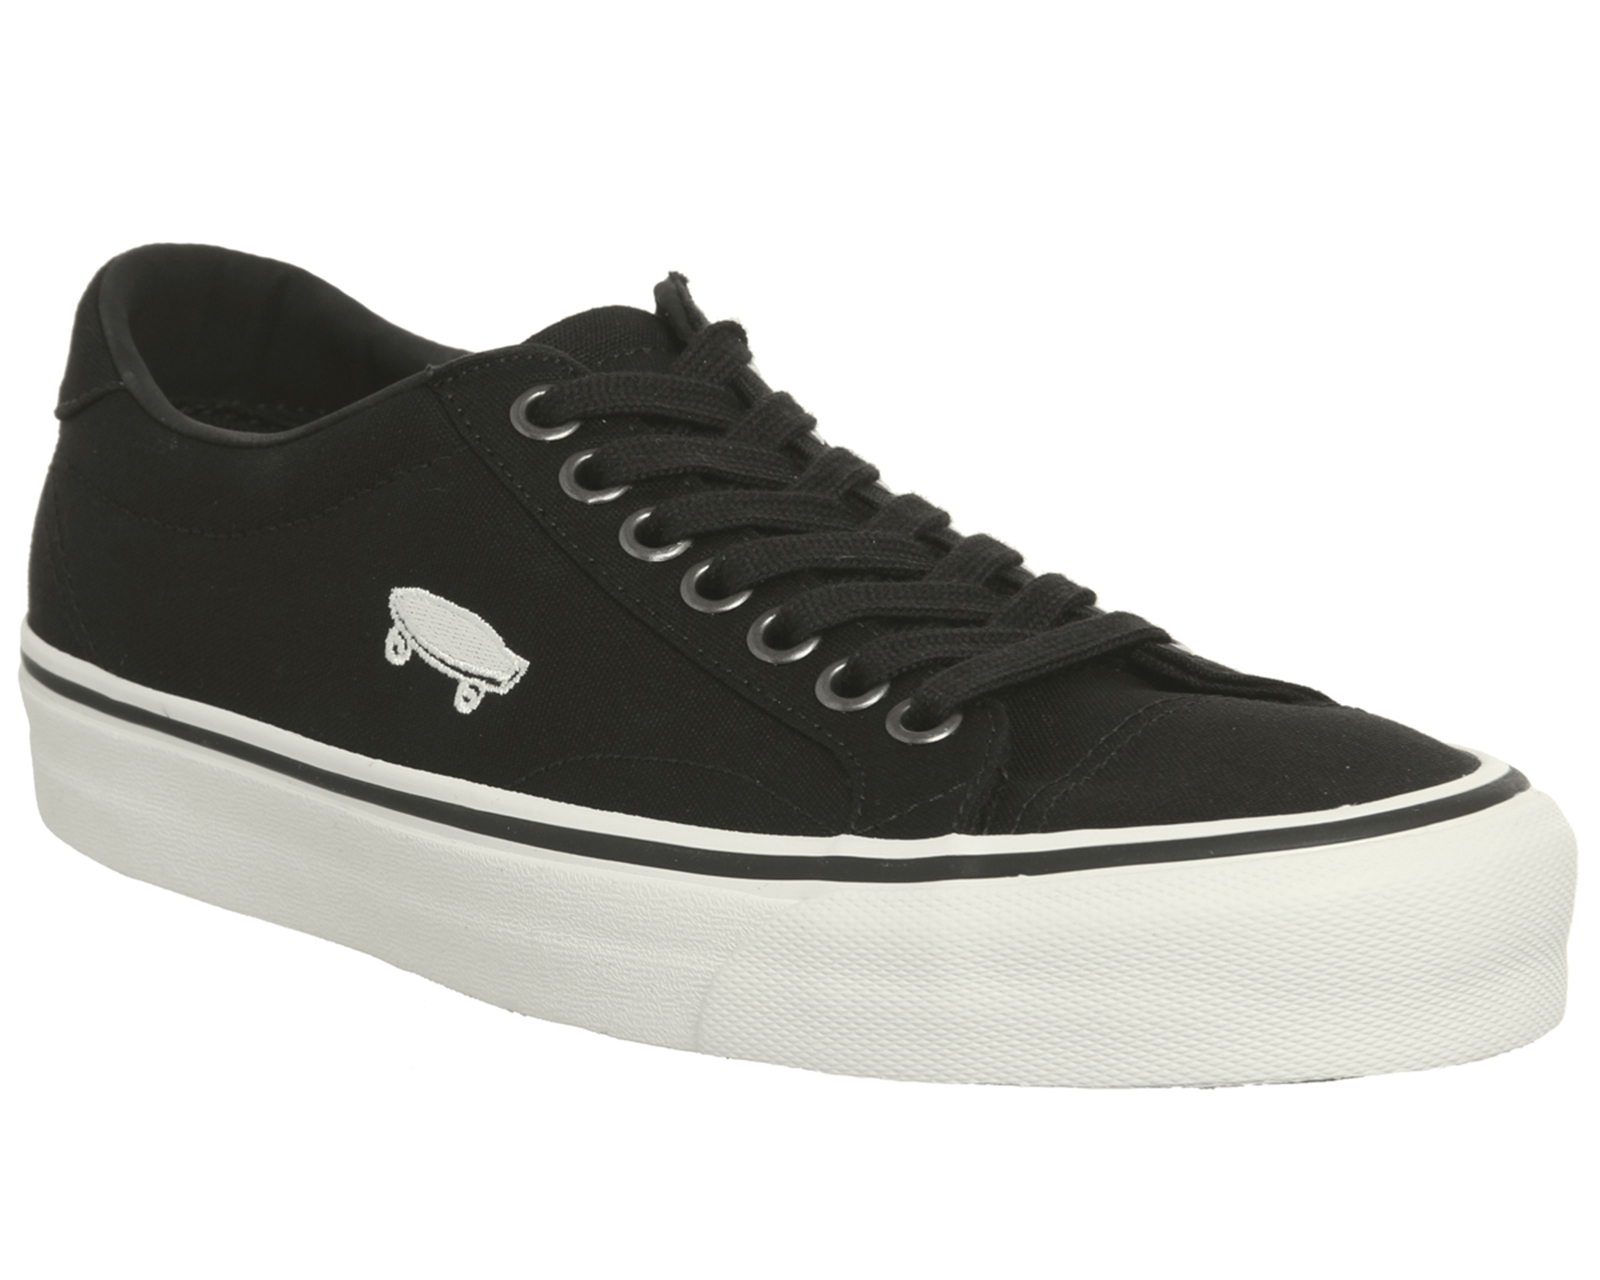 Damenschuhe Vans Court Icon Trainers Schuhes BLACK CLOUD DANCER Trainers Schuhes Trainers 983dc1